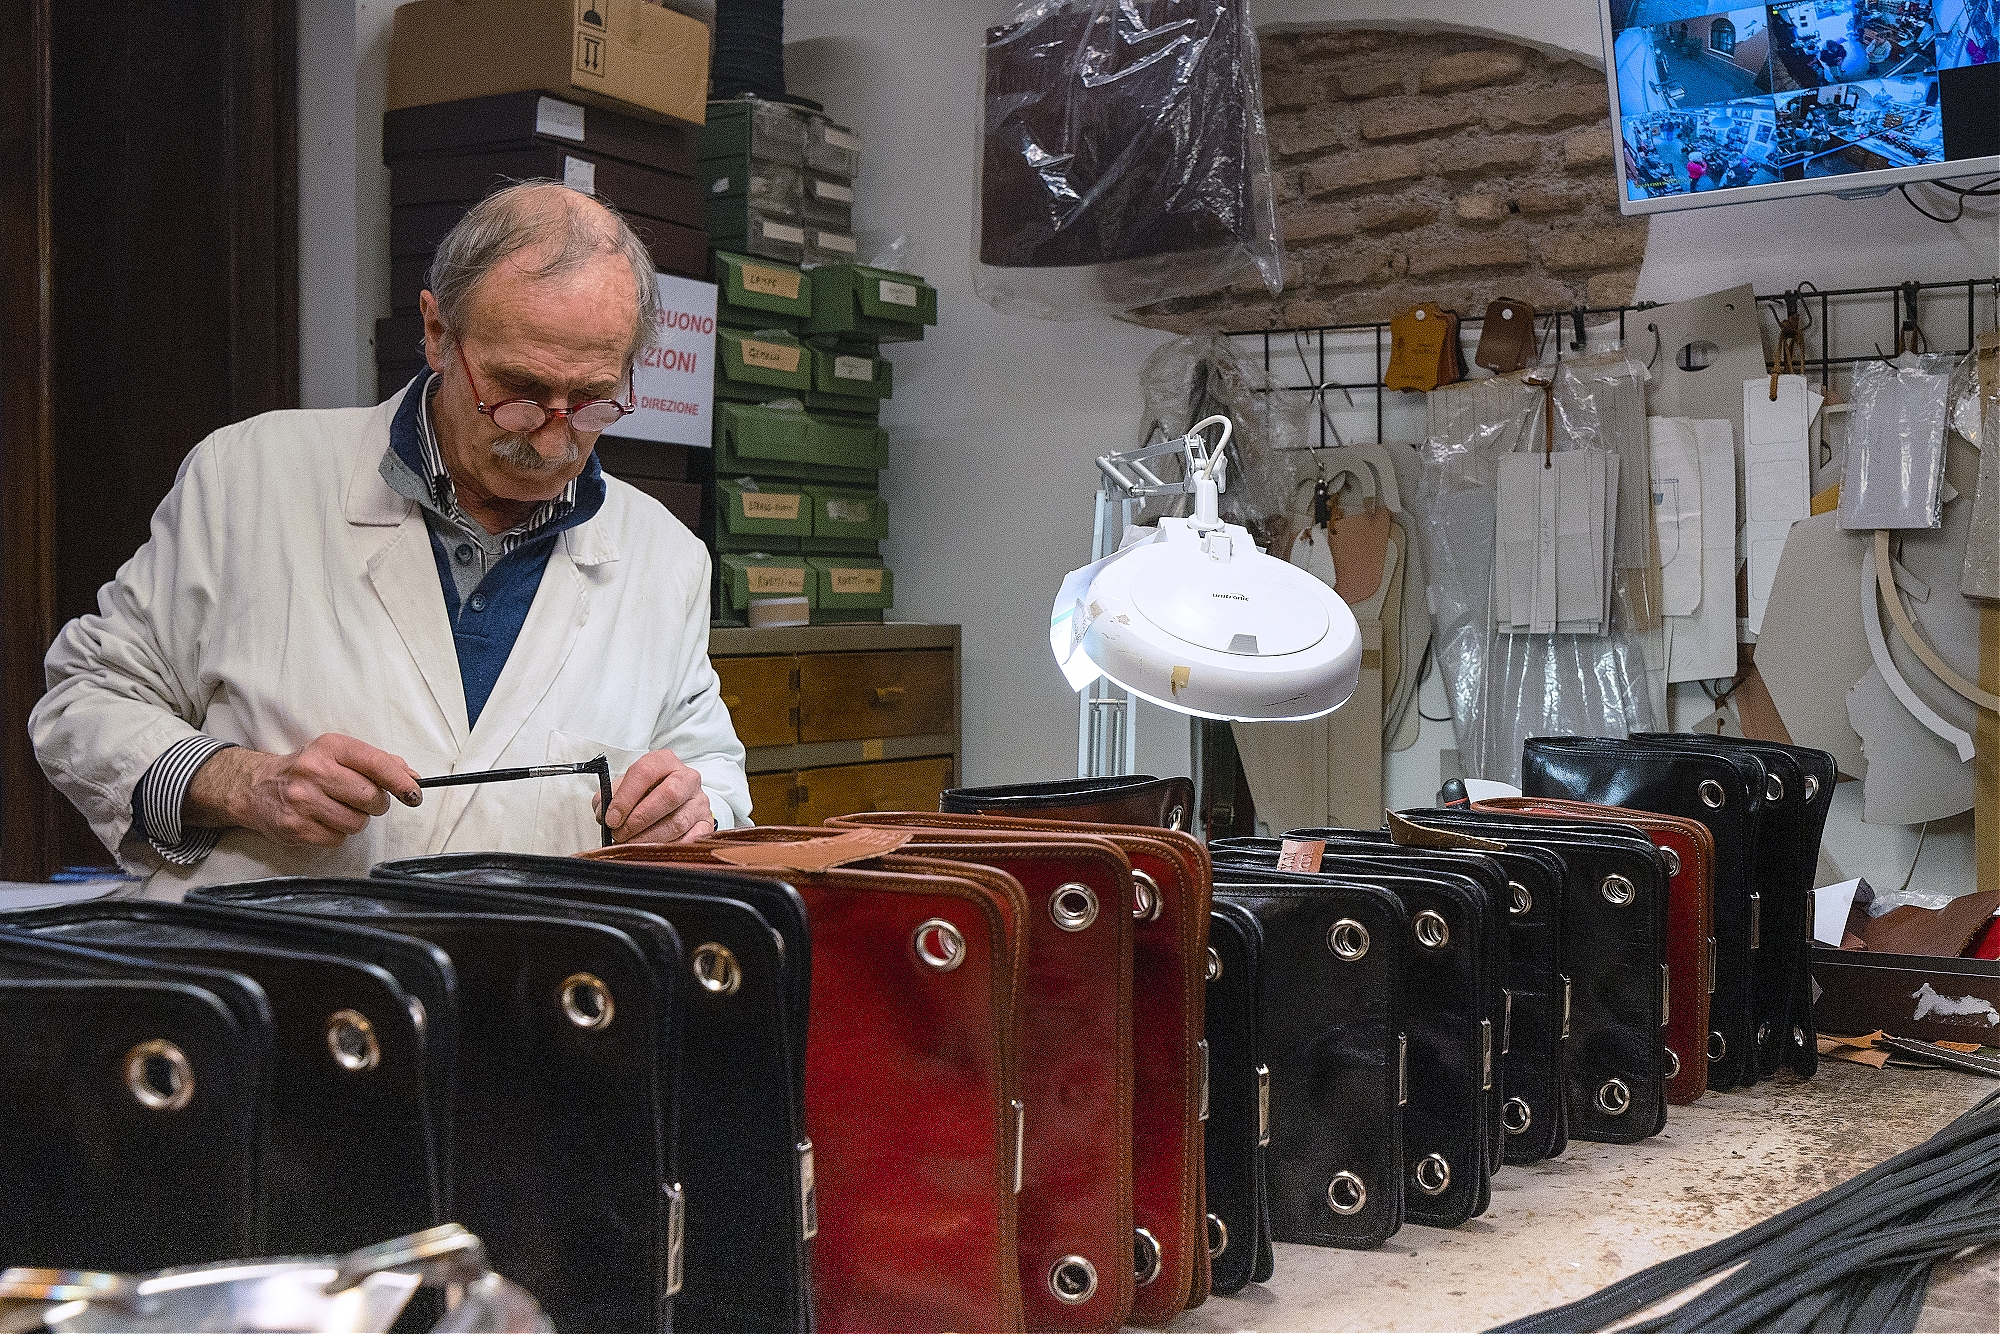 Aldo, Leather Craftsman, Rome